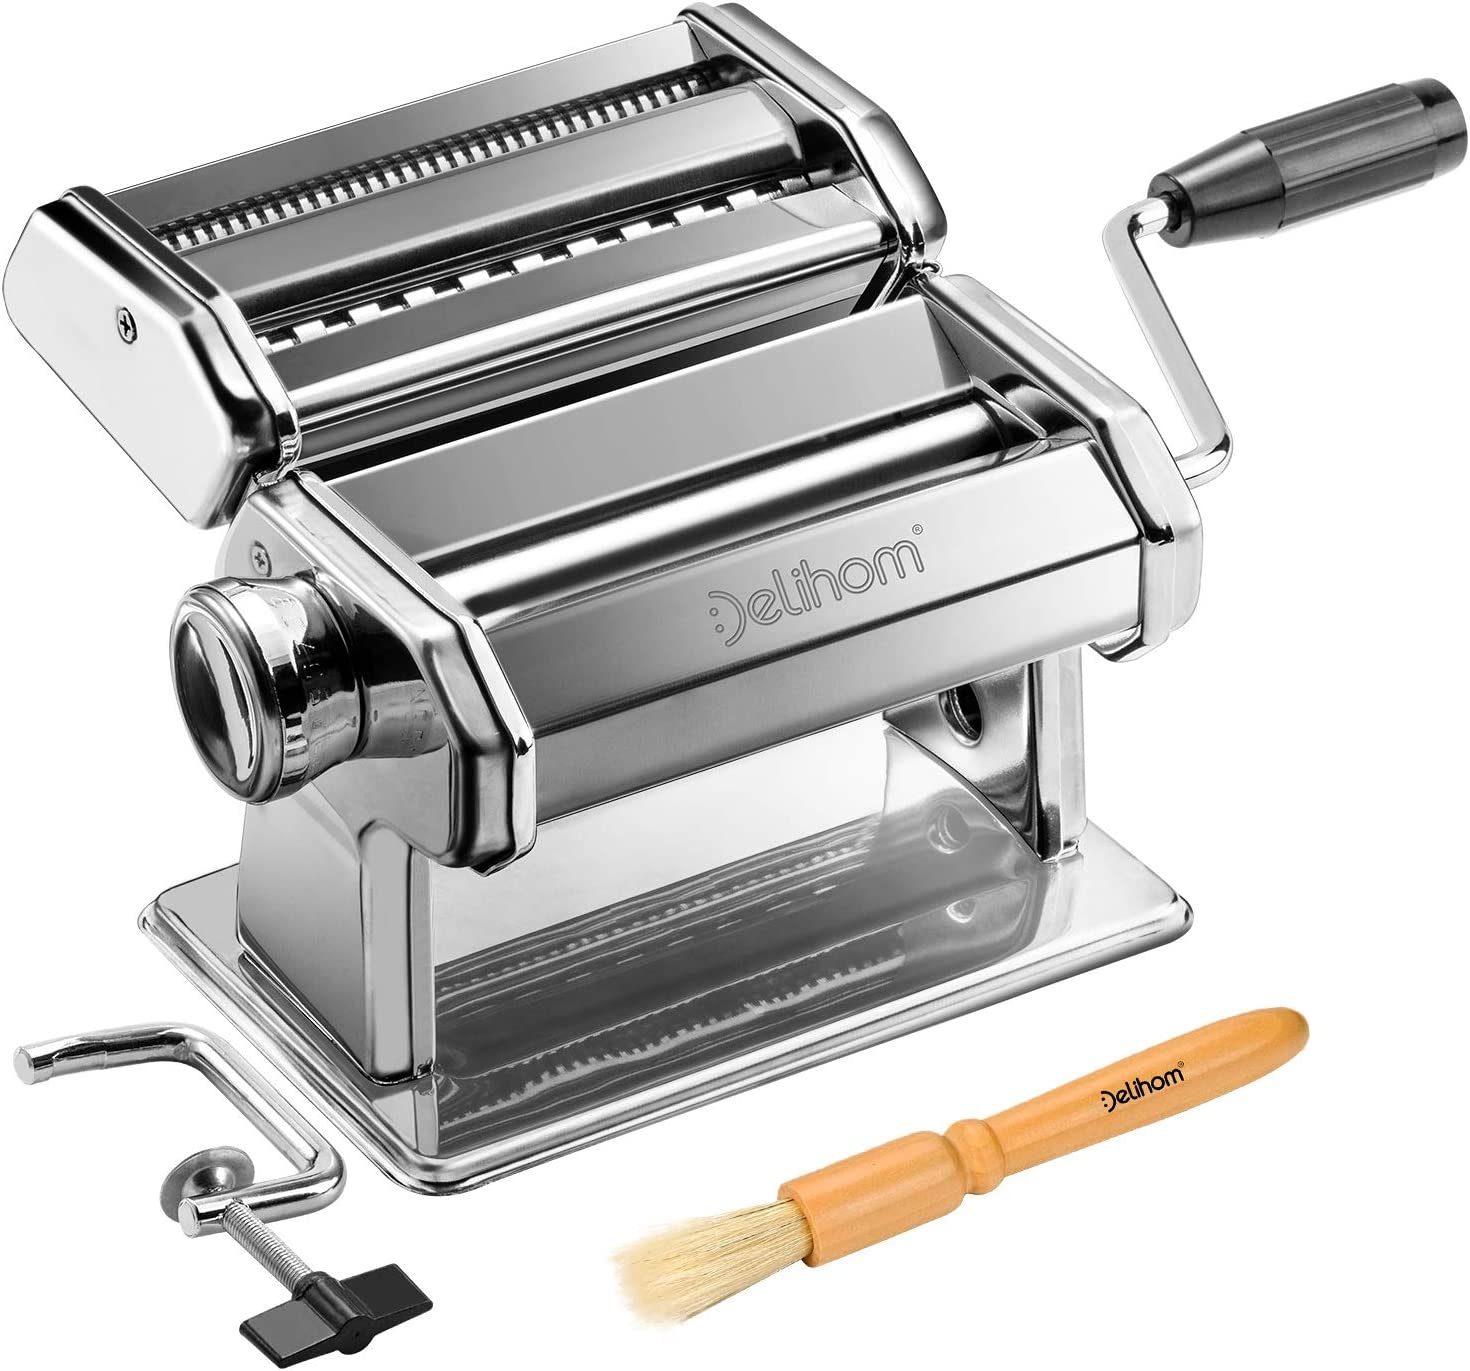 NEW before selling ☆ Delihom Pasta Max 71% OFF Maker - Stainless Cutter Steel Han Machine